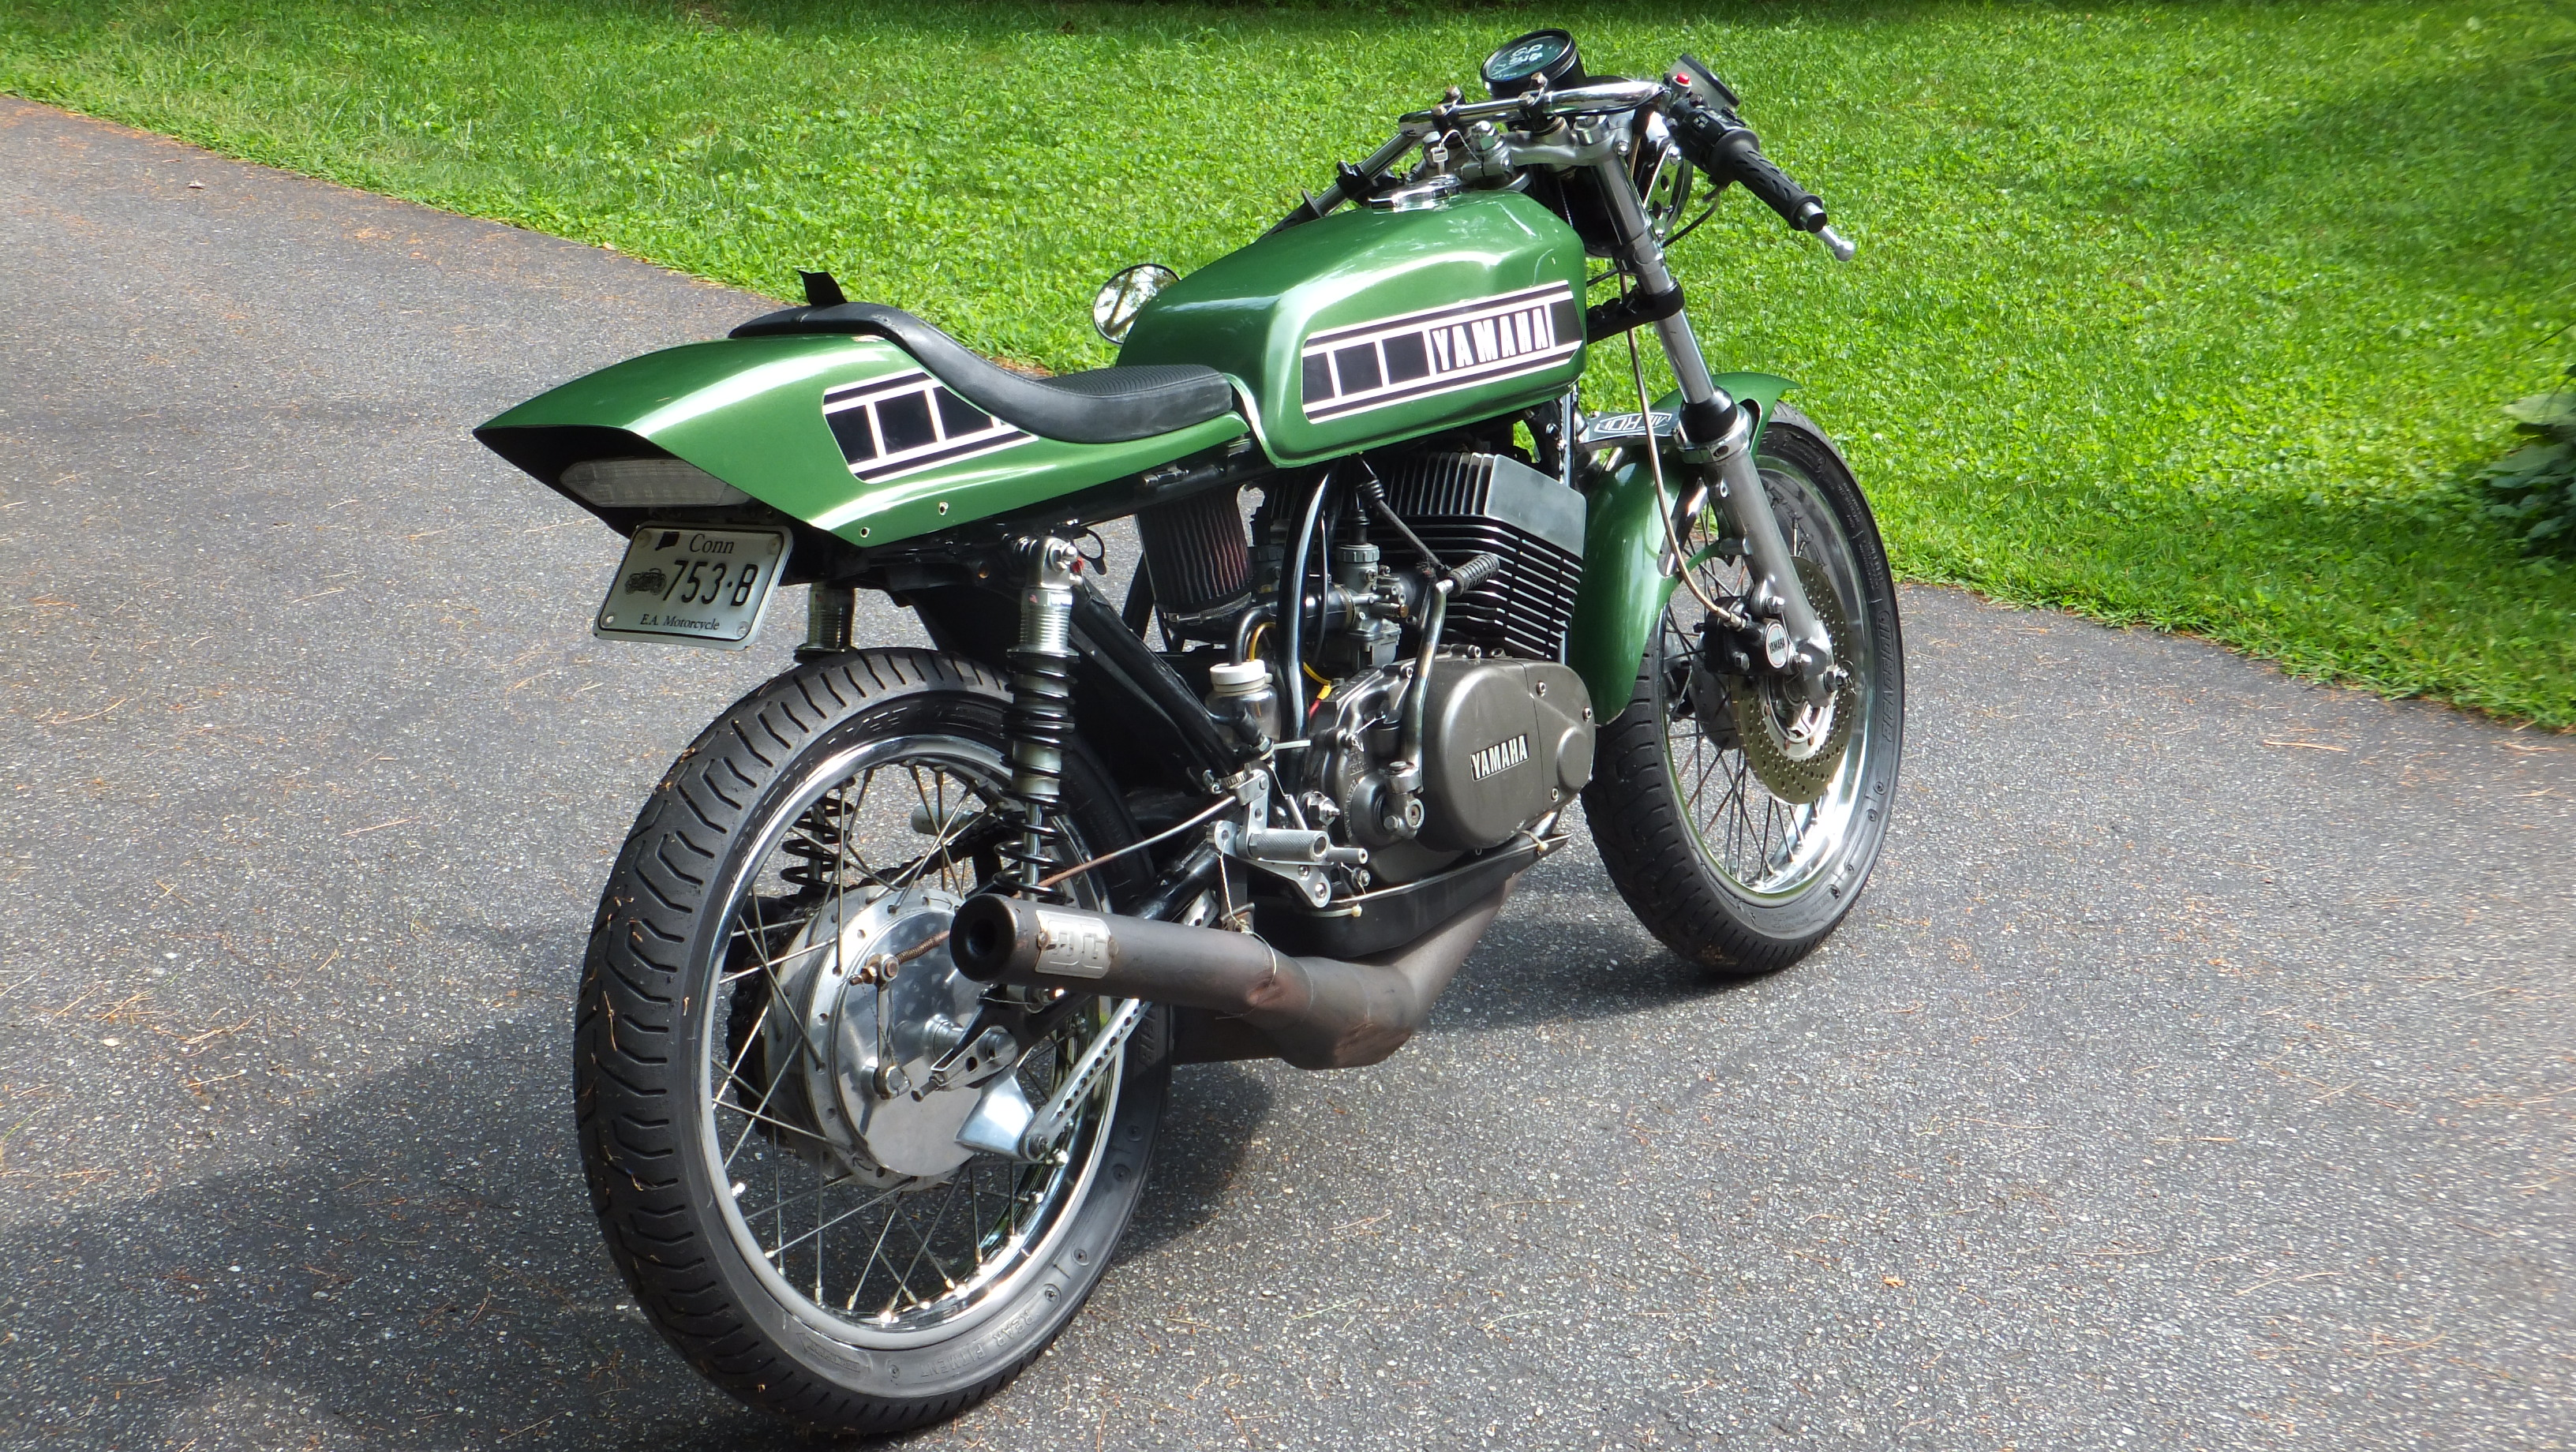 1976 Yamaha RD400 Caf Racer or Vintage Race Bike